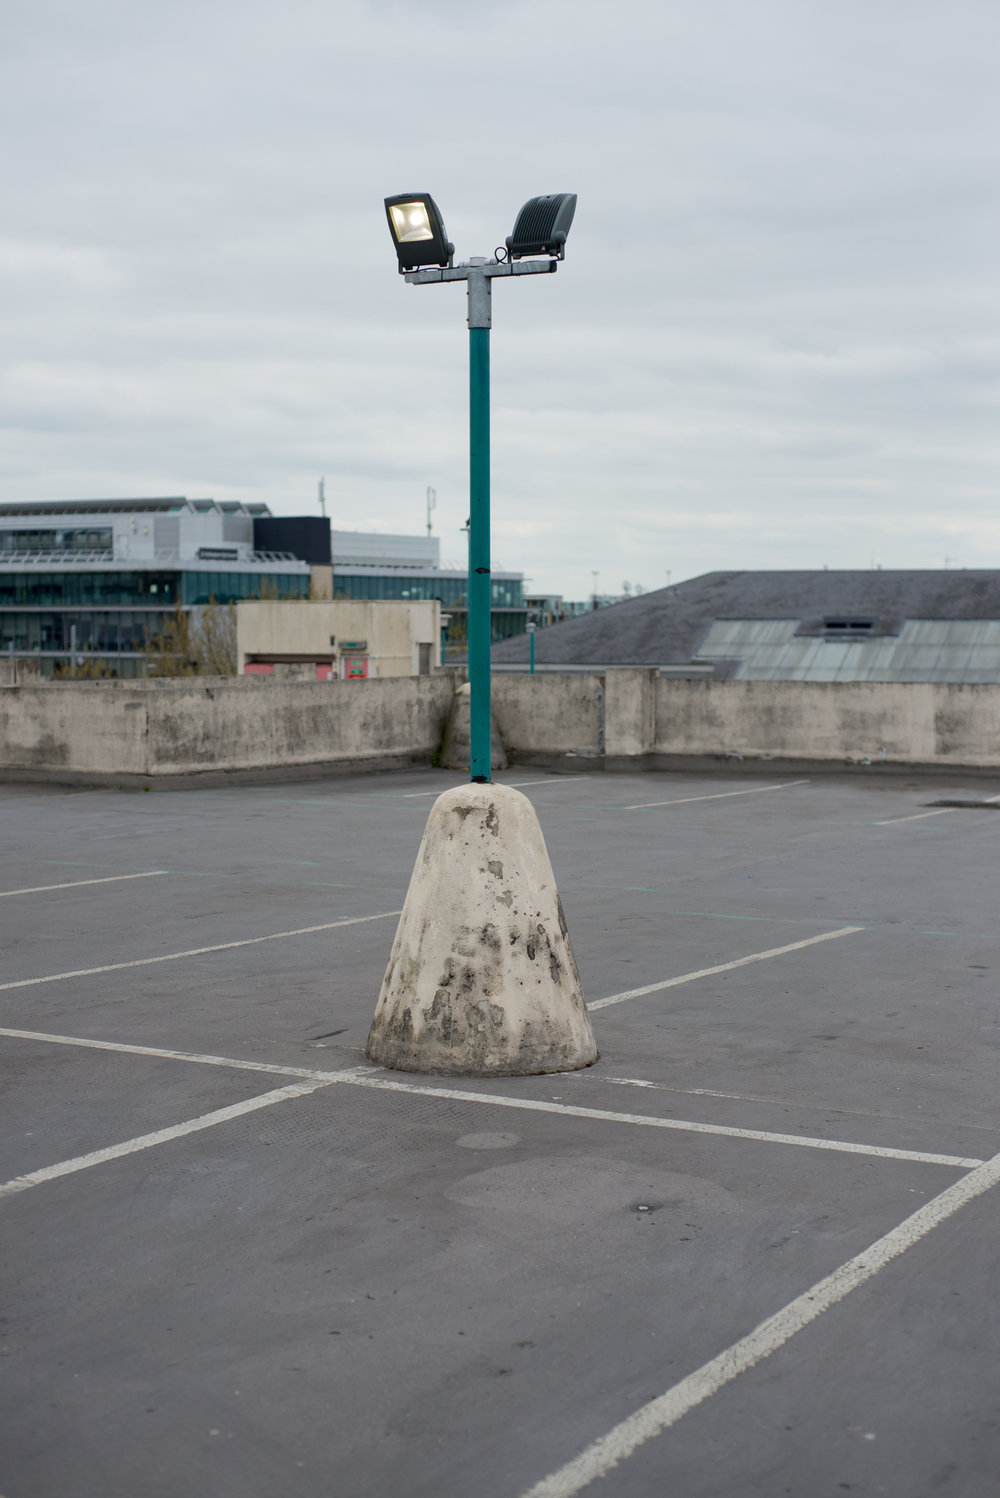 A street lamp on top of a car park in Nottingham.